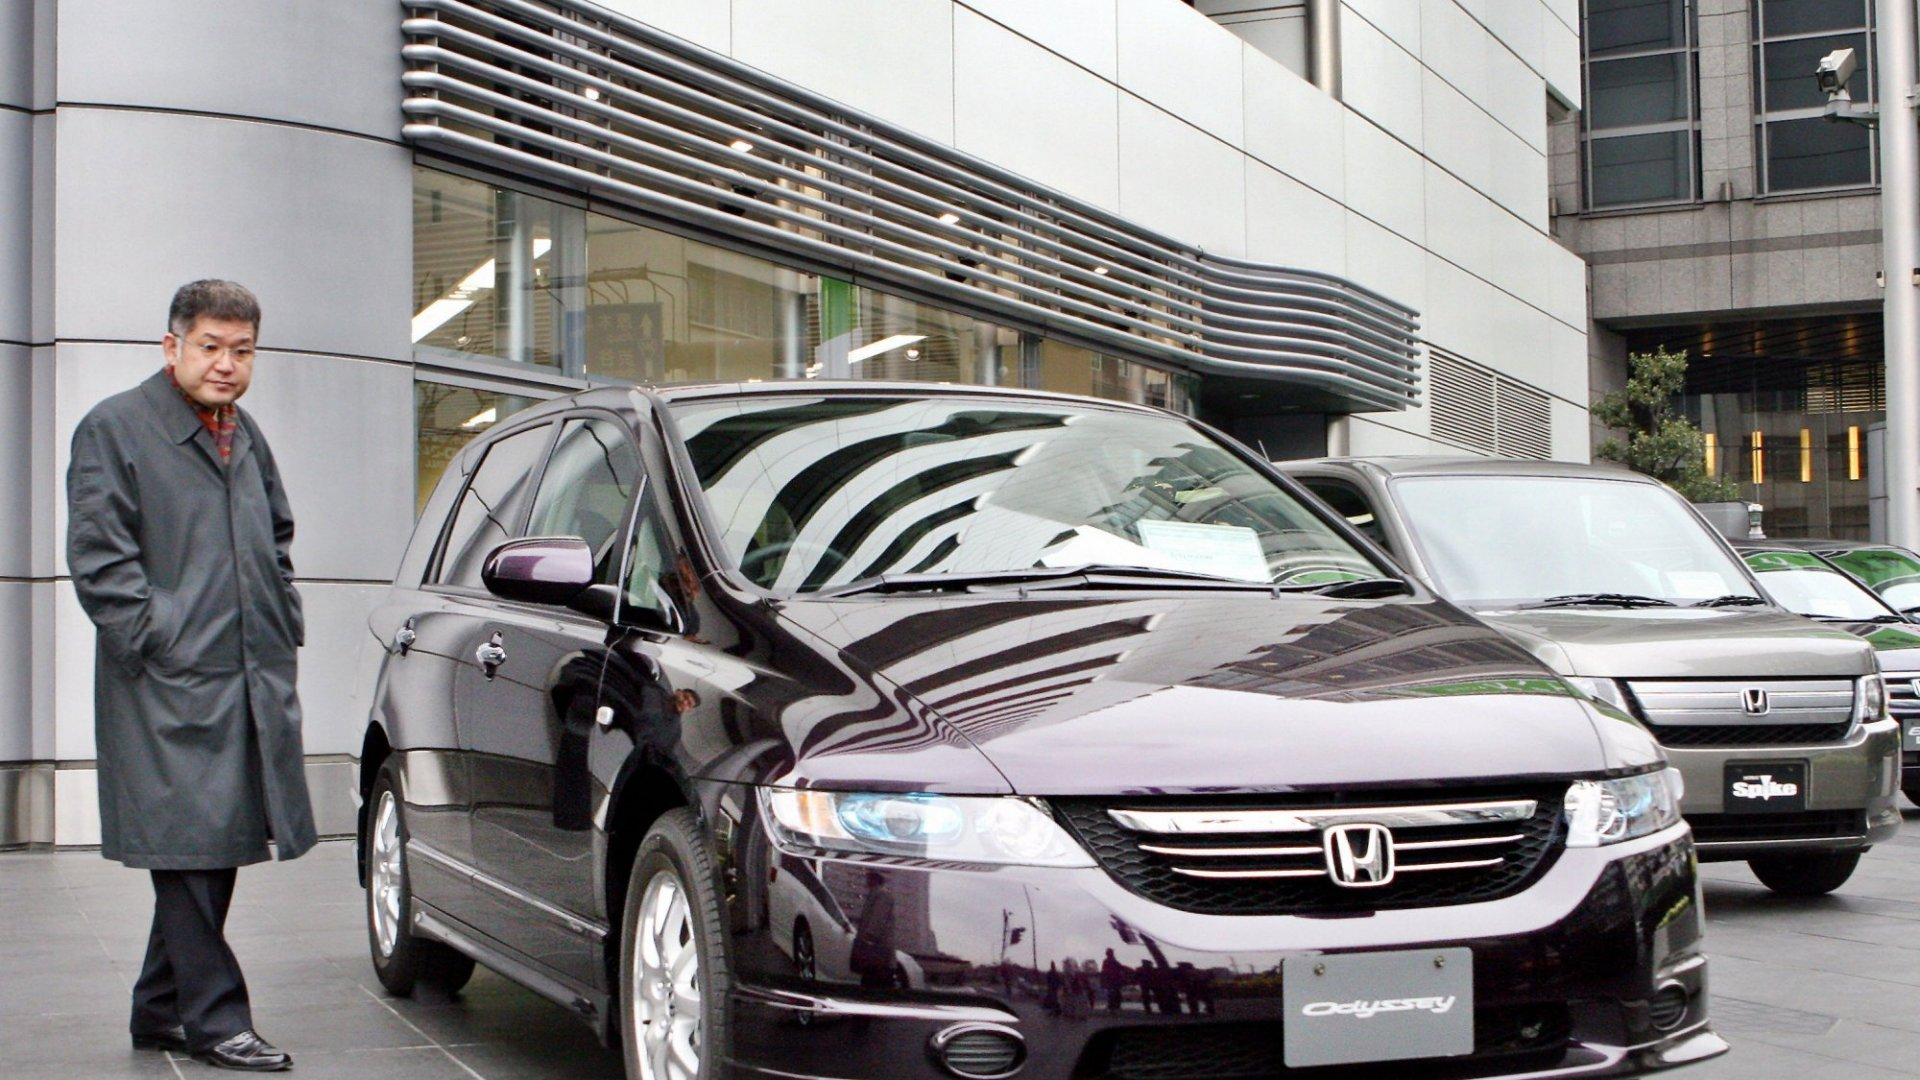 Honda's Sayama plant in Japan, which makes the Odyssey mini van and other models, shut down for a day this week after factory computers were hit by the virus.